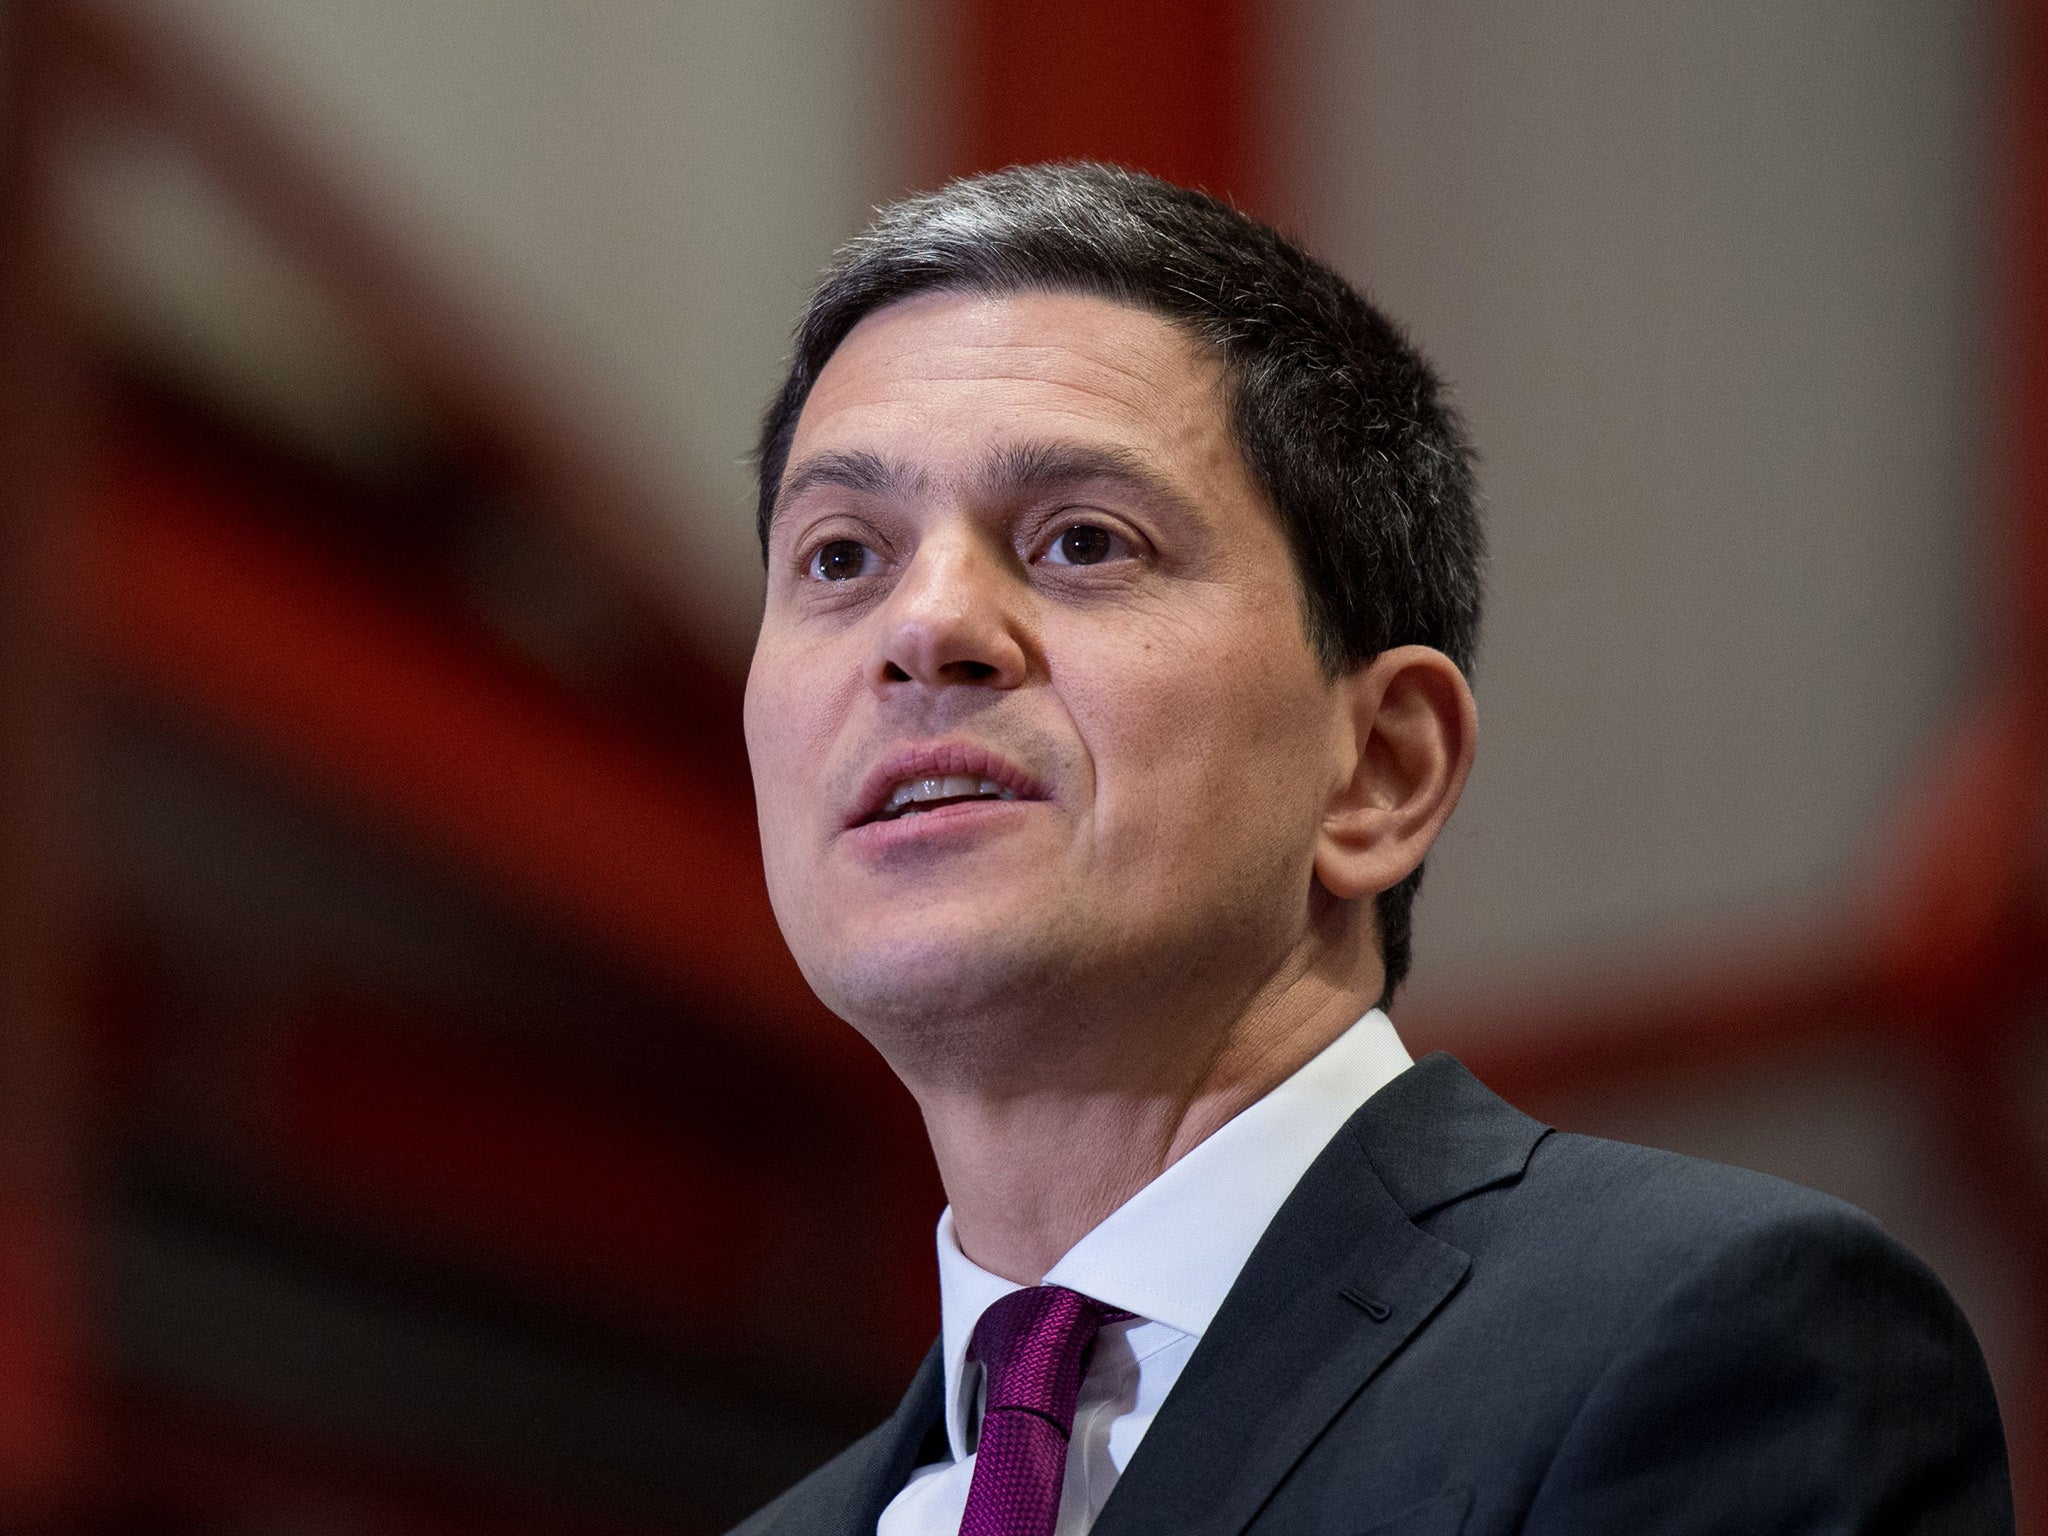 David Miliband, the International Rescue Committee (IRC) President and CEO